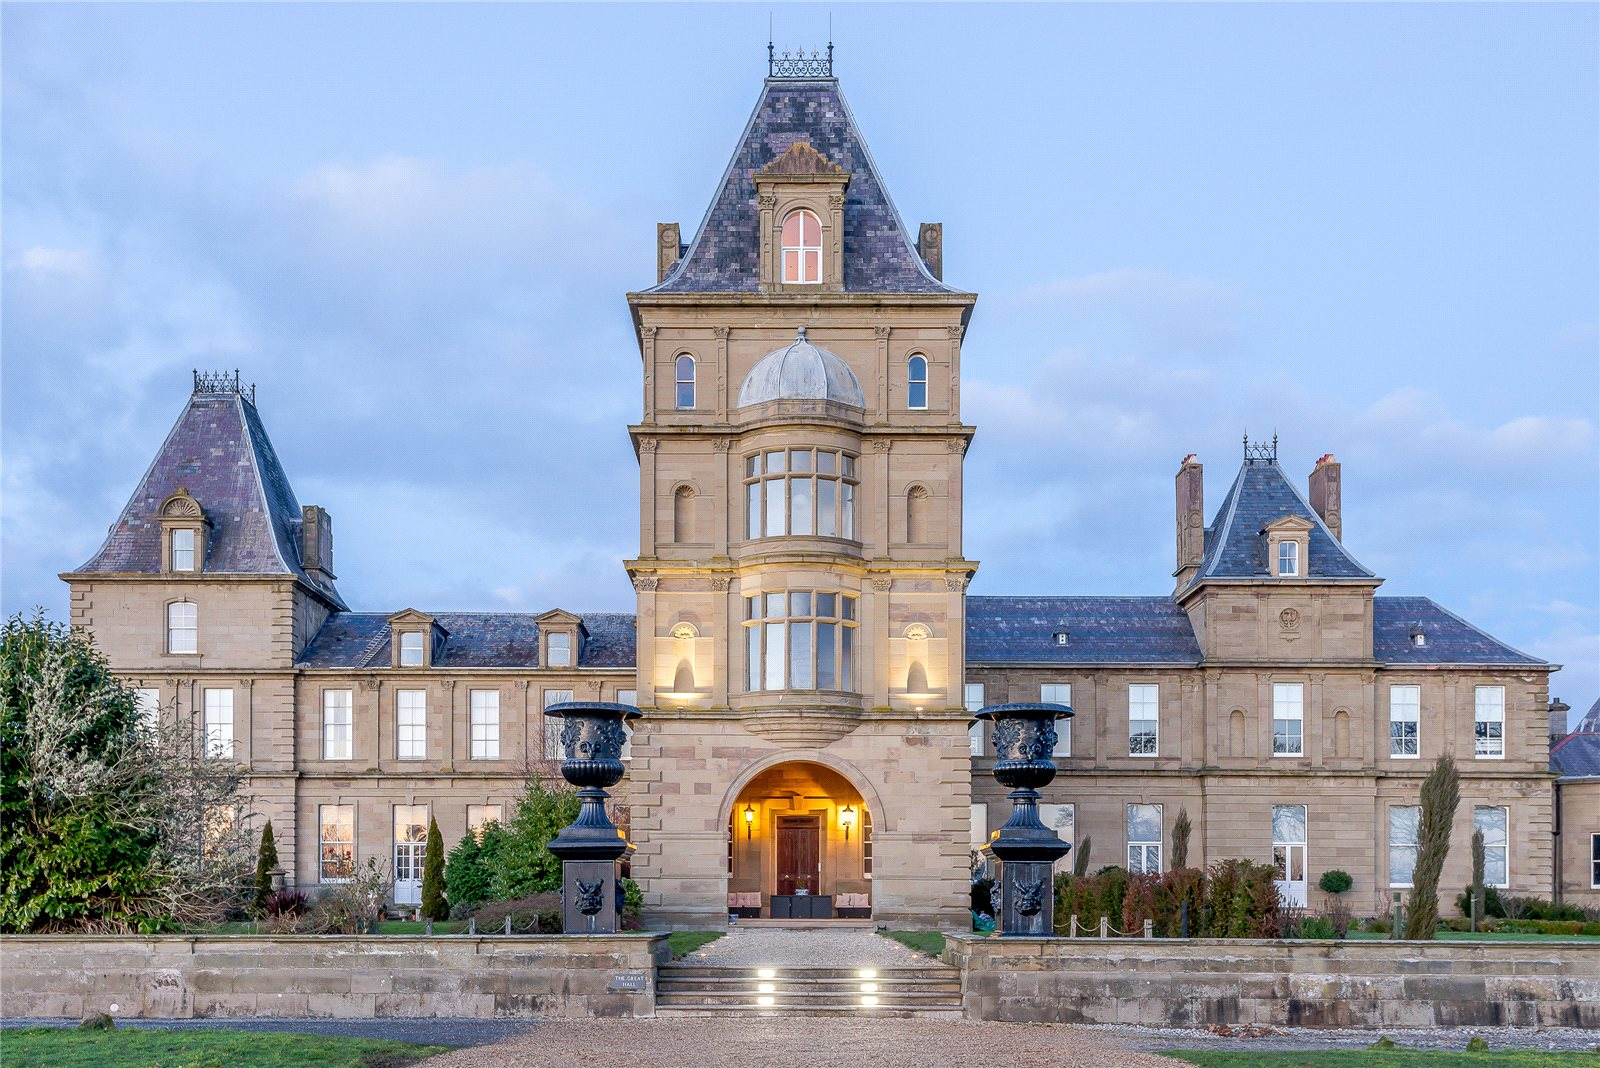 一戸建て のために 売買 アット Wynnstay Hall Estate, Ruabon, Wrexham, Clwyd, LL14 Wrexham, Wales